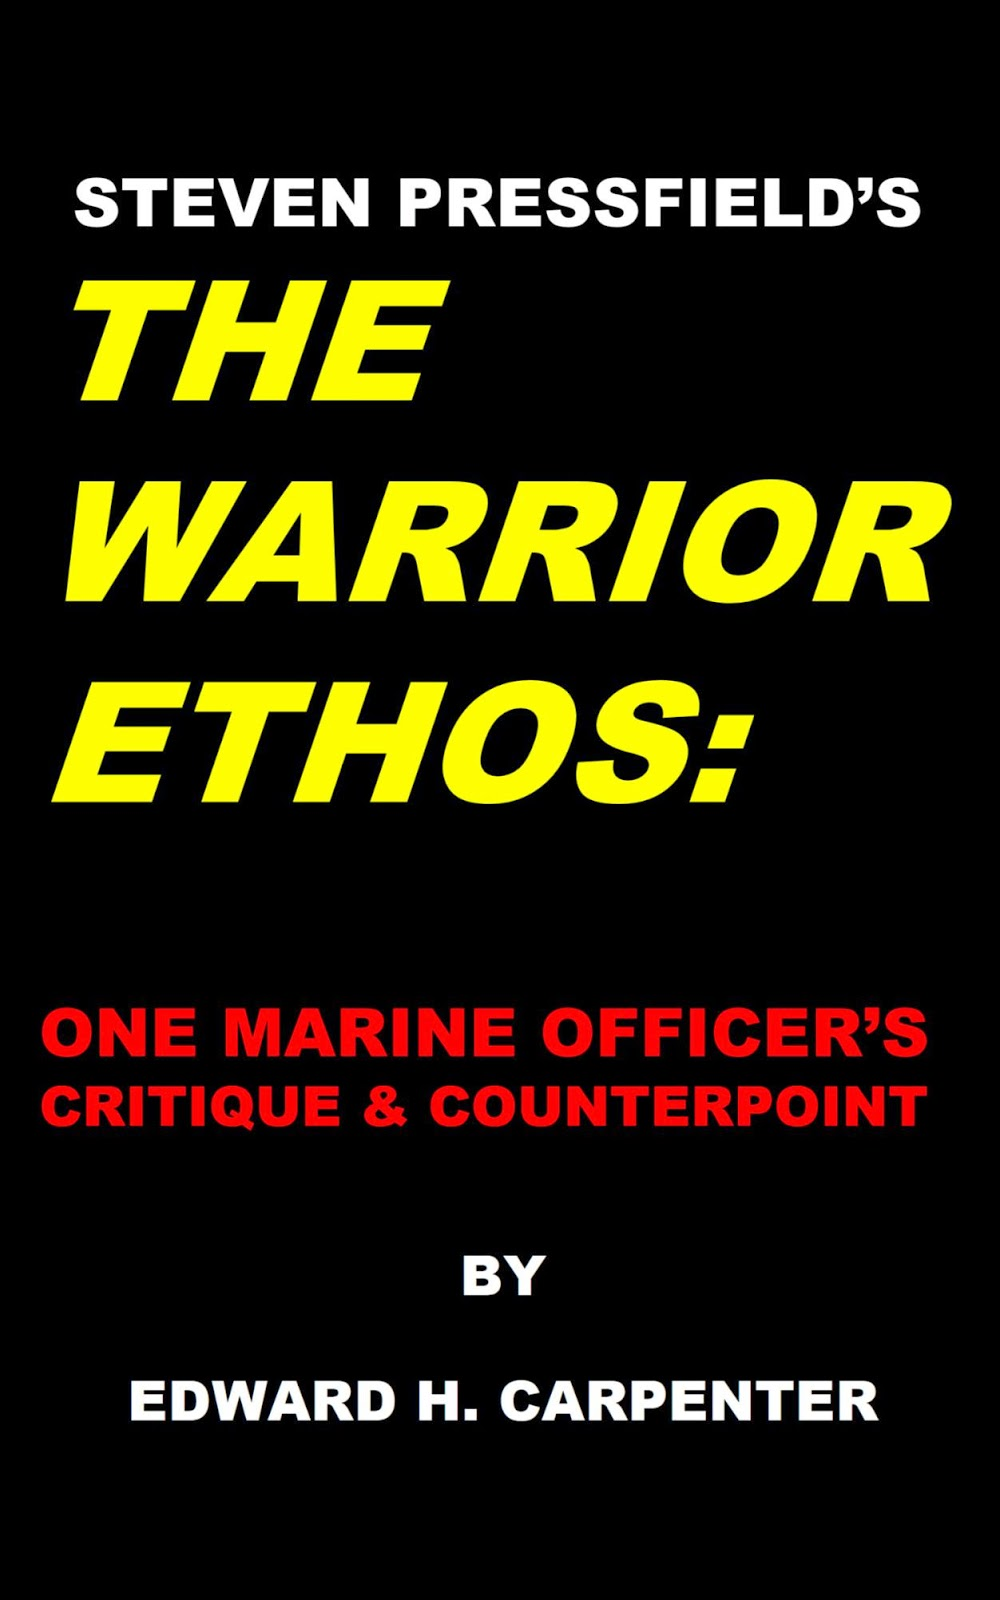 essay on the warrior ethos Education system in sri lanka essay warrior ethos essay help april 9, 2018 how to make your business pleasurable for your customers april 8, 2018.